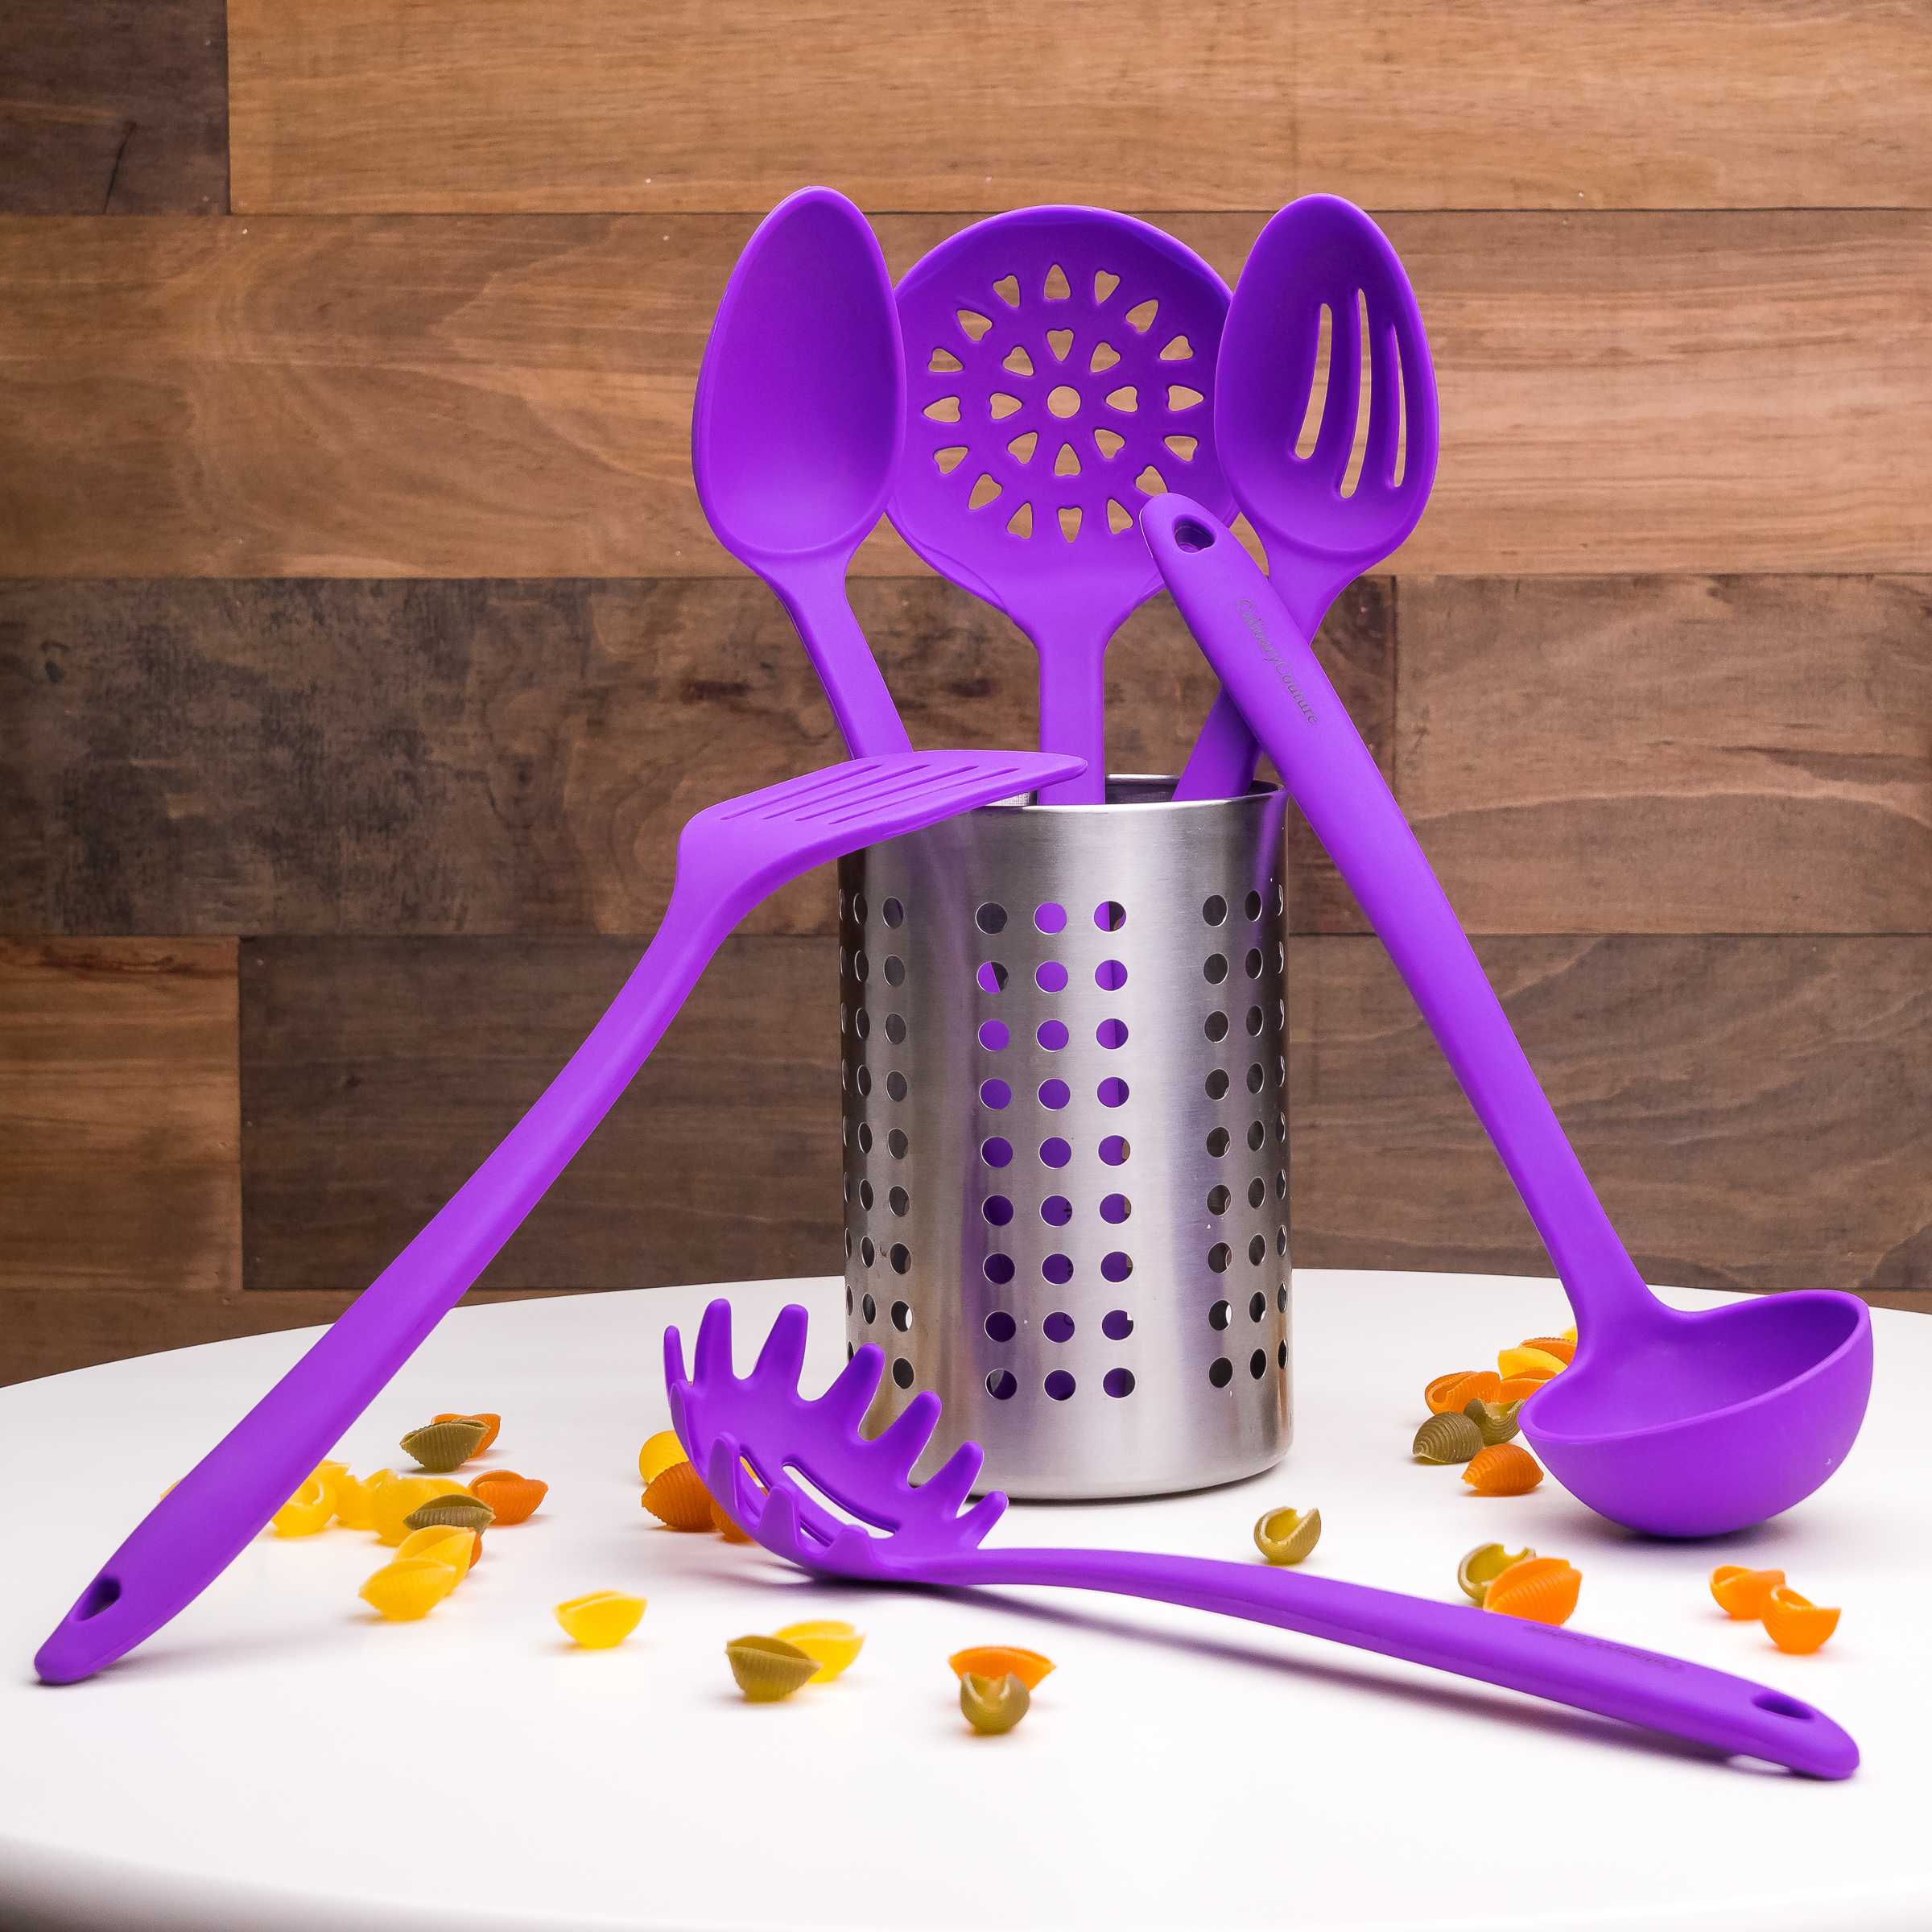 Purple Utensils Set